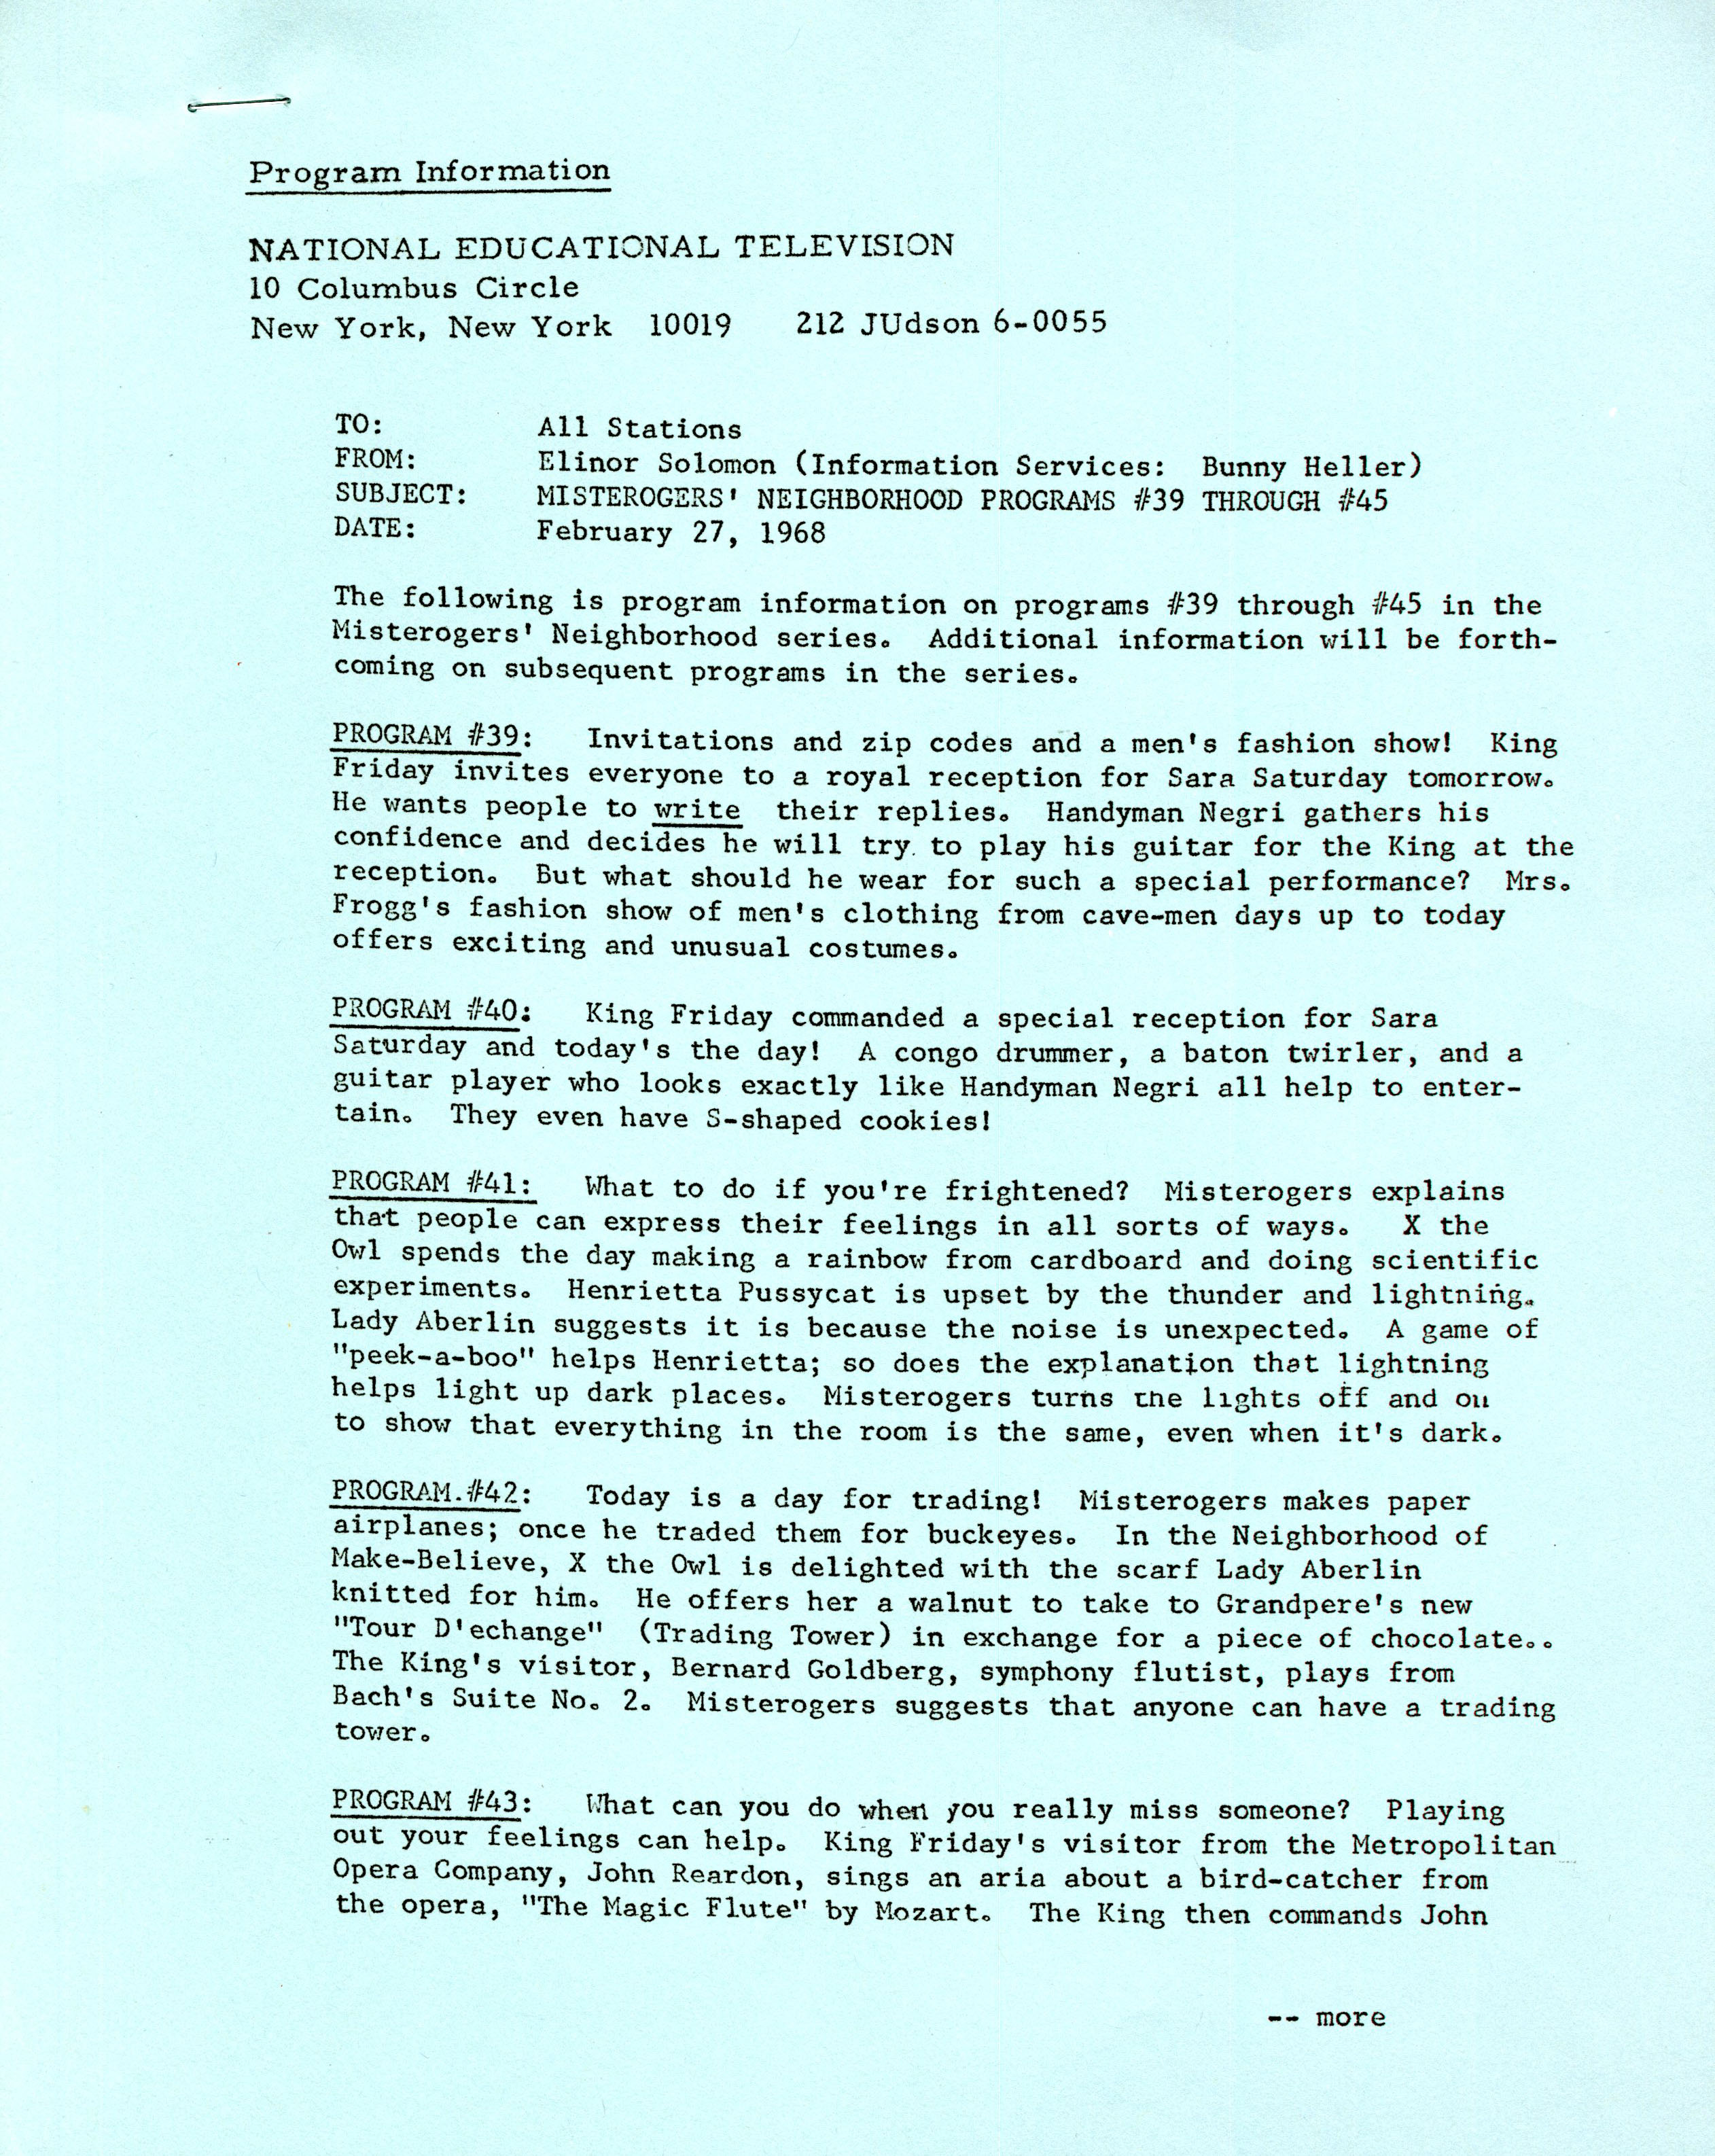 """Program Information NATIONAL EDUCATIONAL TELEVISION 10 Columbus Circle New York, New York 10019212 JUdson 6-0055 TO: FROM: SUBJECT: DATE: All Stations Elinor Solomon (Information Services: Bunny Heller) MISTEROGERS' NEIGHBORHOOD PROGRAMS #39 THROUGH #45 February 27, 1968 The following is program information on programs #39 through #45 in the Misterogers' Neighborhood series. Additional information will be forth¬coming on subsequent programs in the series. PROGRAM #39: Invitations and zip codes and a men's fashion show! King Friday invites everyone to a royal reception for Sara Saturday tomorrow. He wants people to write their replies. Handyman Negri gathers his confidence and decides he will try. to play his guitar for the King at the reception. But what should he wear for such a special performance? Mrs. Frogg's fashion show of men's clothing from cave-men days up to today offers exciting and unusual costumes. PROGRAM #40: King Friday commanded a special reception for Sara Saturday and today's the day! A congo drummer, a baton twirler, and a guitar player who looks exactly like Handyman Negri all help to enter¬tain. They even have S-shaped cookies! PROGRAM #41: What to do if you're frightened? Misterogers explains tha-t people can express their feelings in all sorts of ways. X the Owl spends the day making a rainbow from cardboard and doing scientific experiments. Henrietta Pussycat is upset by the thunder and lightning* Lady Aberlin suggests it is because the noise is unexpected. A game of """"peek-a-boo"""" helps Henrietta; so does the explanation that lightning helps light up dark places. Misterogers turns tne lights off and ou to show that everything in the room is the same, even when it's dark. PROGRAM.#42: Today is a day for trading! Misterogers makes paper airplanes; once he traded them for buckeyes. In the Neighborhood of Make-Believe, X the Owl is delighted with the scarf Lady Aberlin knitted for him. He offers her a walnut to take to Grandpere's new """"Tour D'ech"""